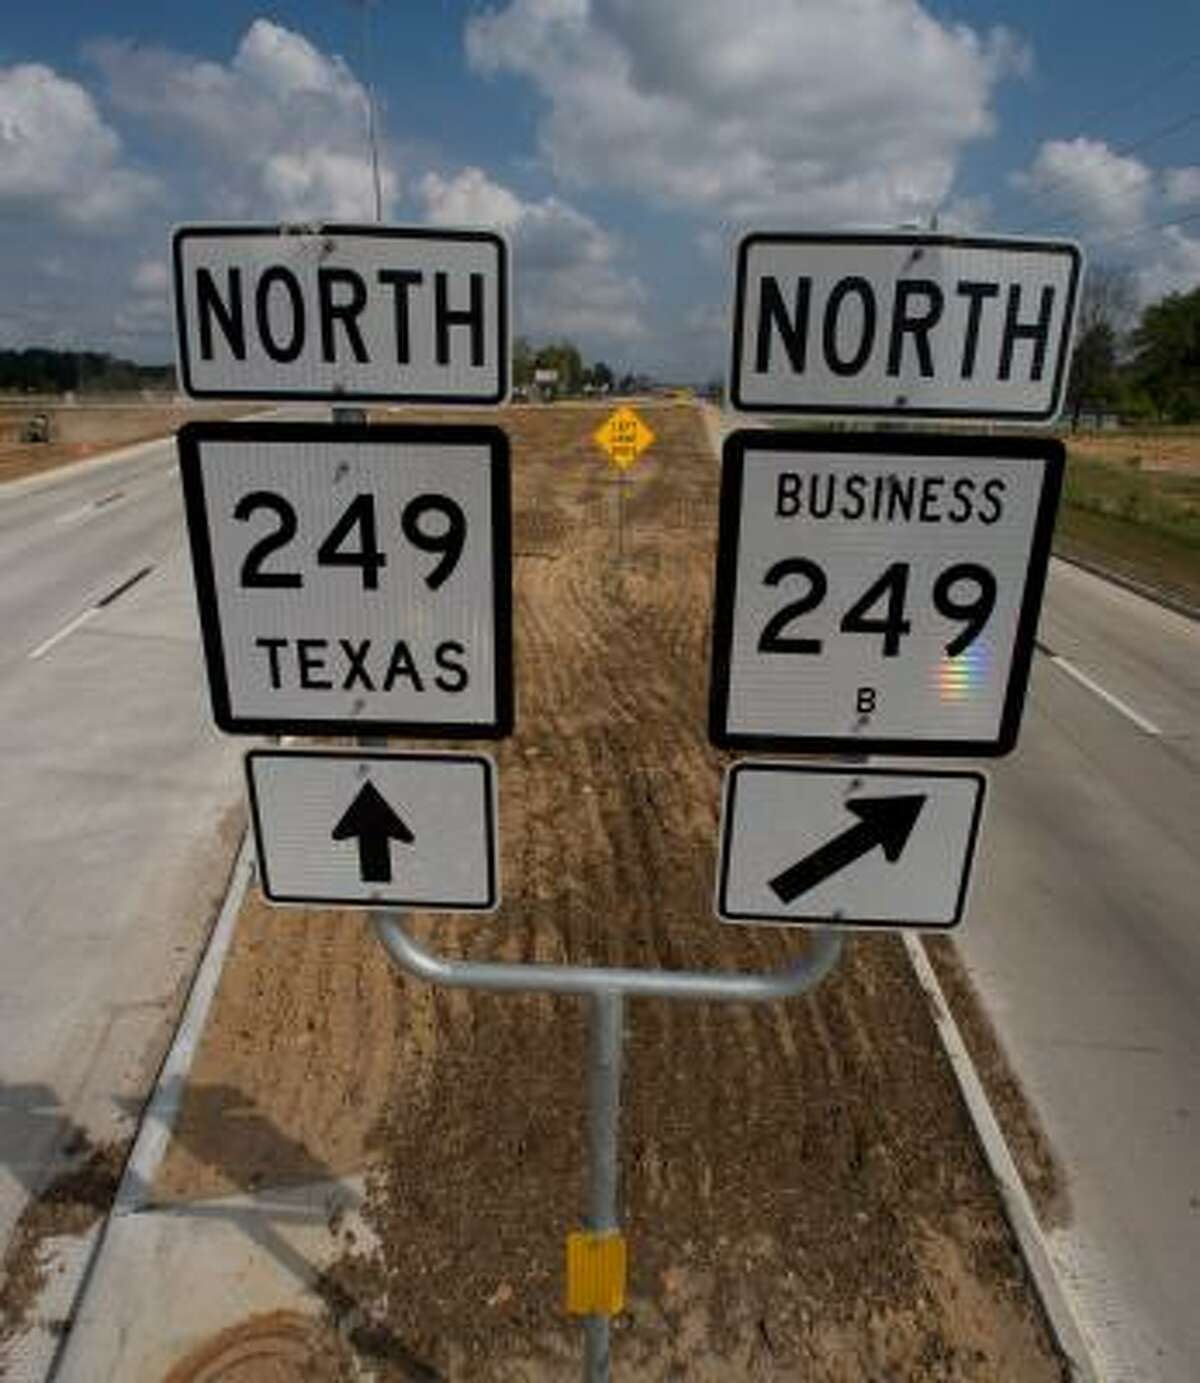 State Highway 249 northbound splits south of Tomball. The right, or business rout goes through town while the left goes to the bypass. Some businesses in Tomball are complaining that their business has declined since TxDot opened a bypass on Texas 249 that allows motorists to avoid the traffic lights in the town's central business district.